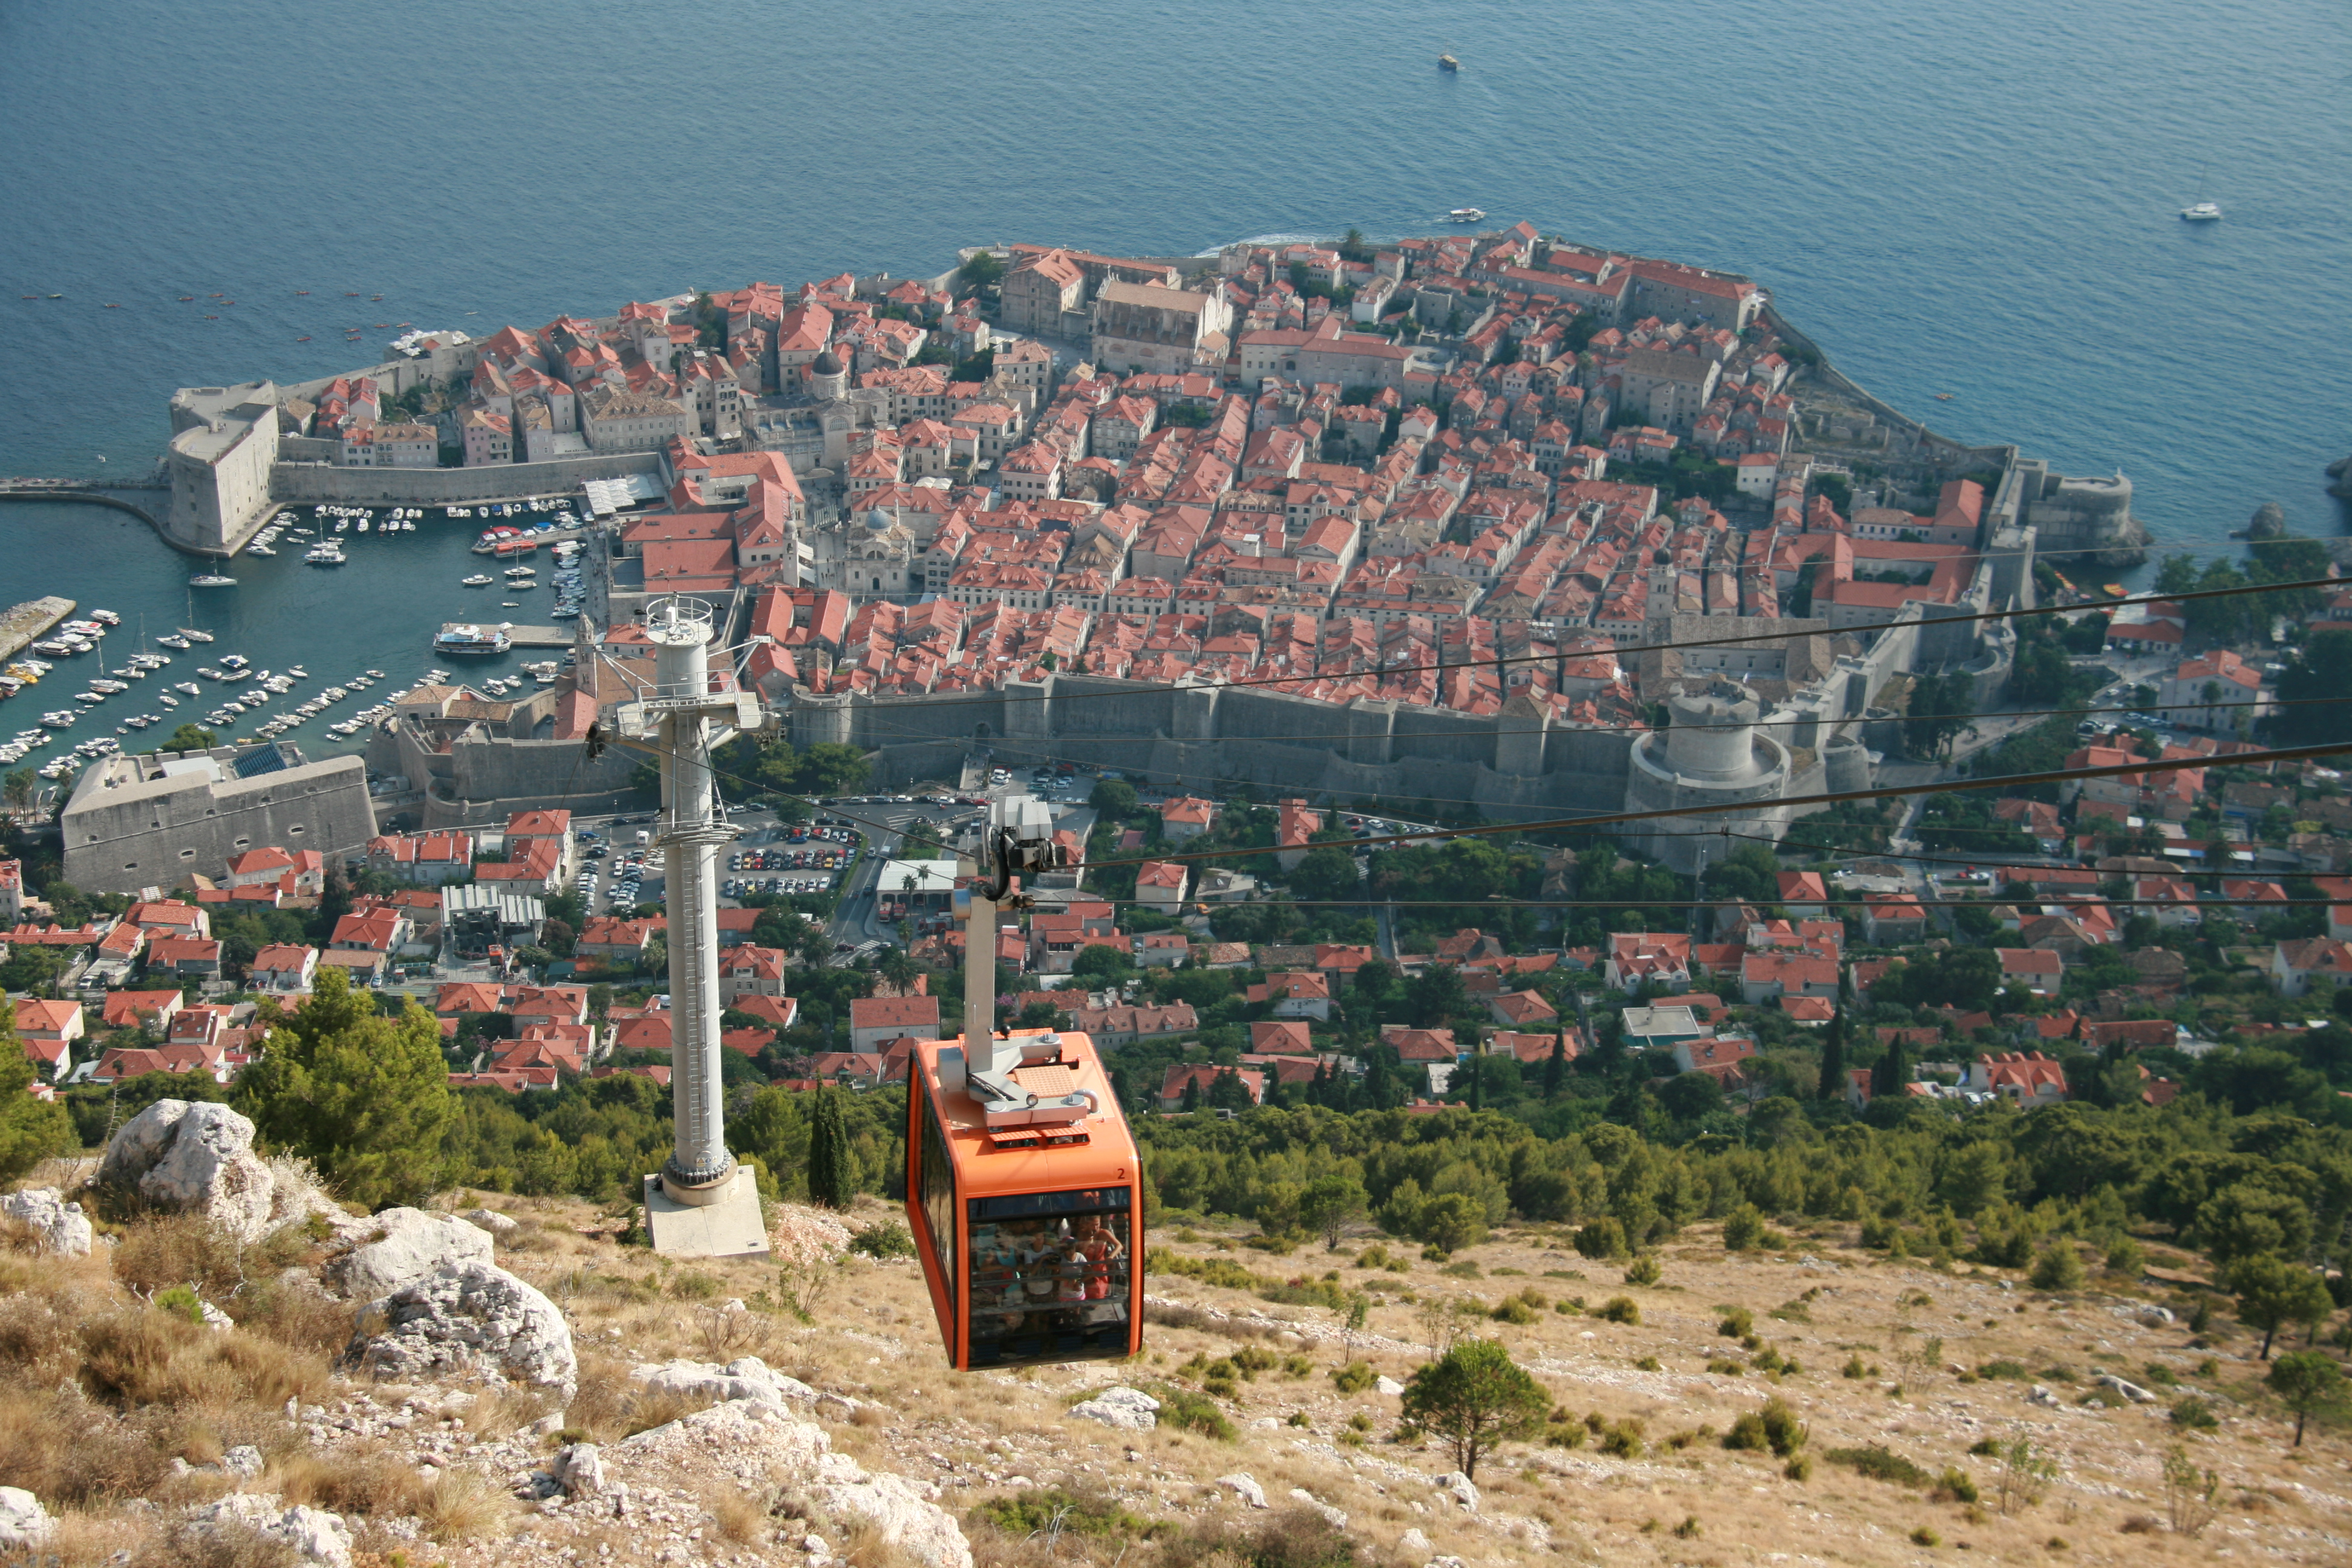 Taking the funicular up ...